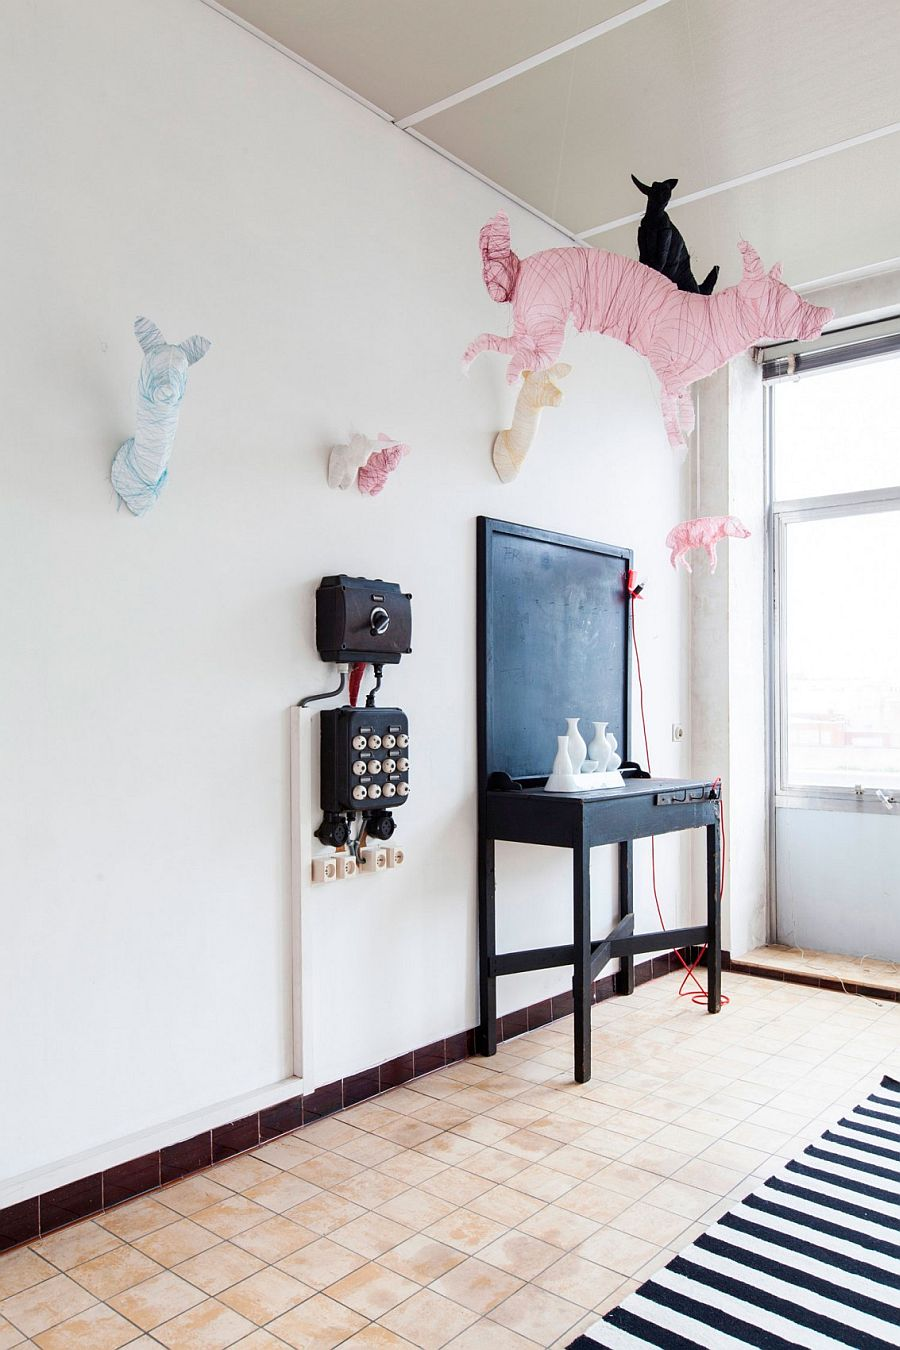 Unique, suspended animal figurines inside the Ghent apartment